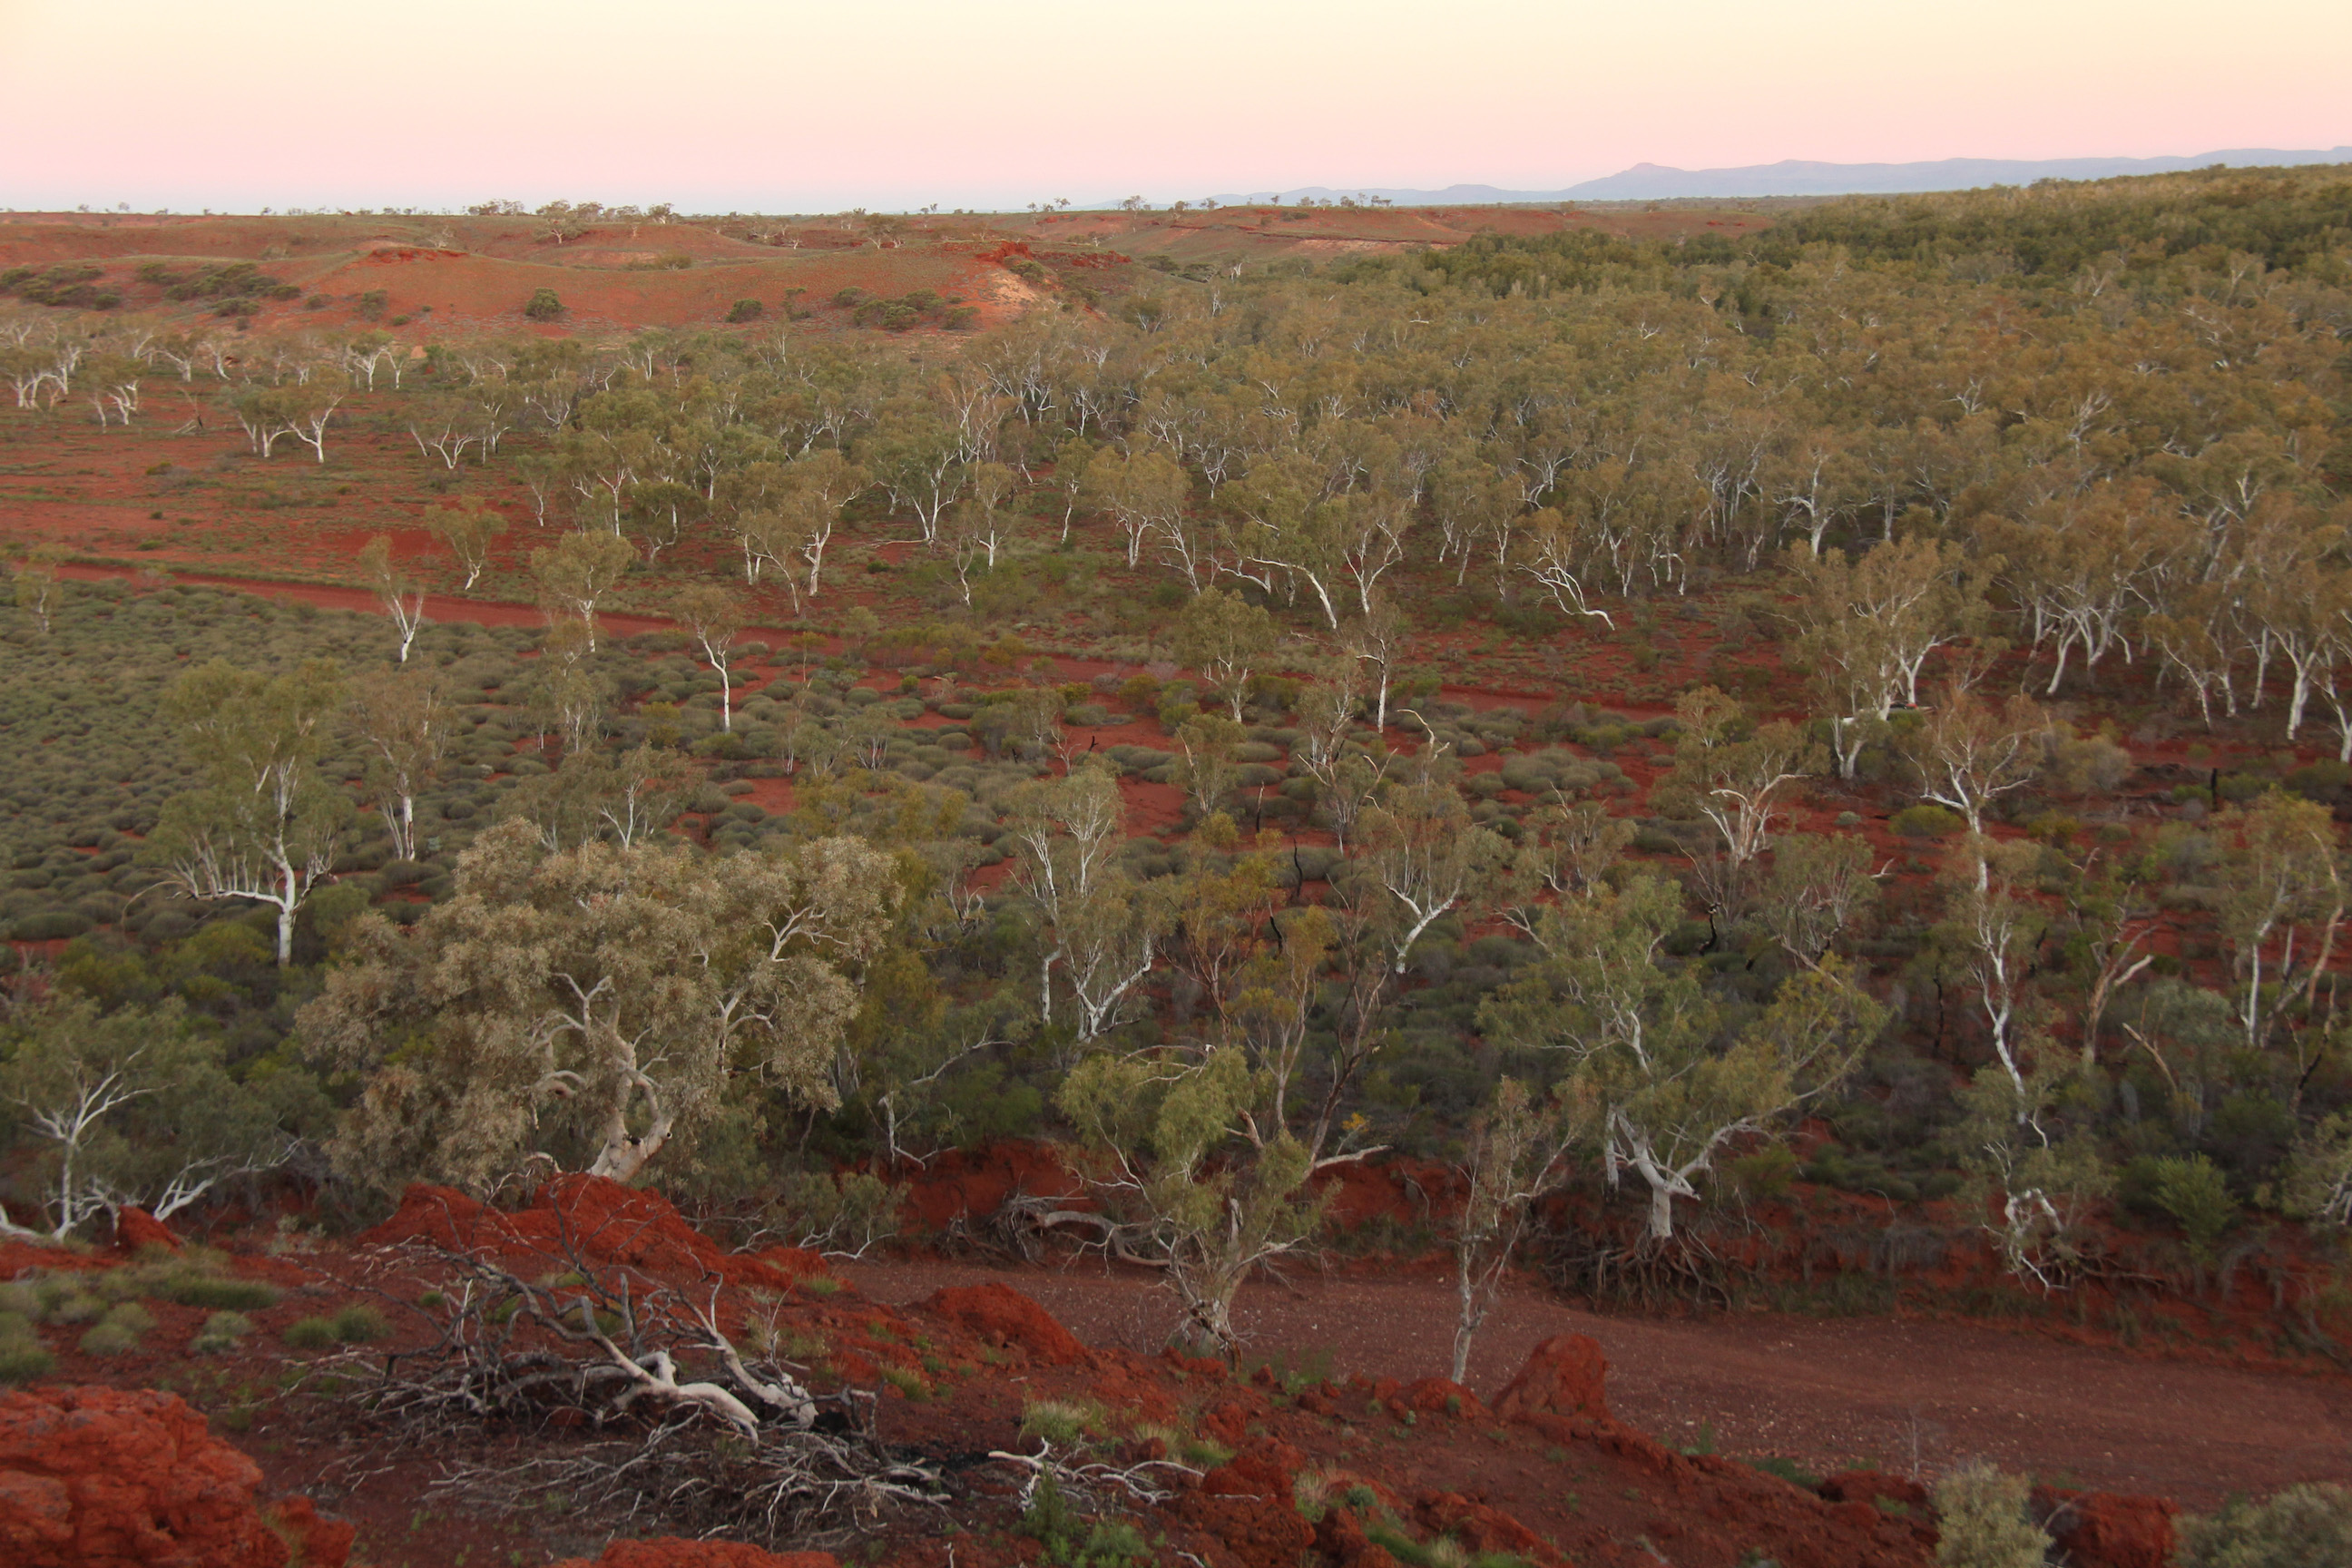 Forests and woodlands about 60% of the size of Australia have recently been identified, increasing the amount of global forest by 9%.